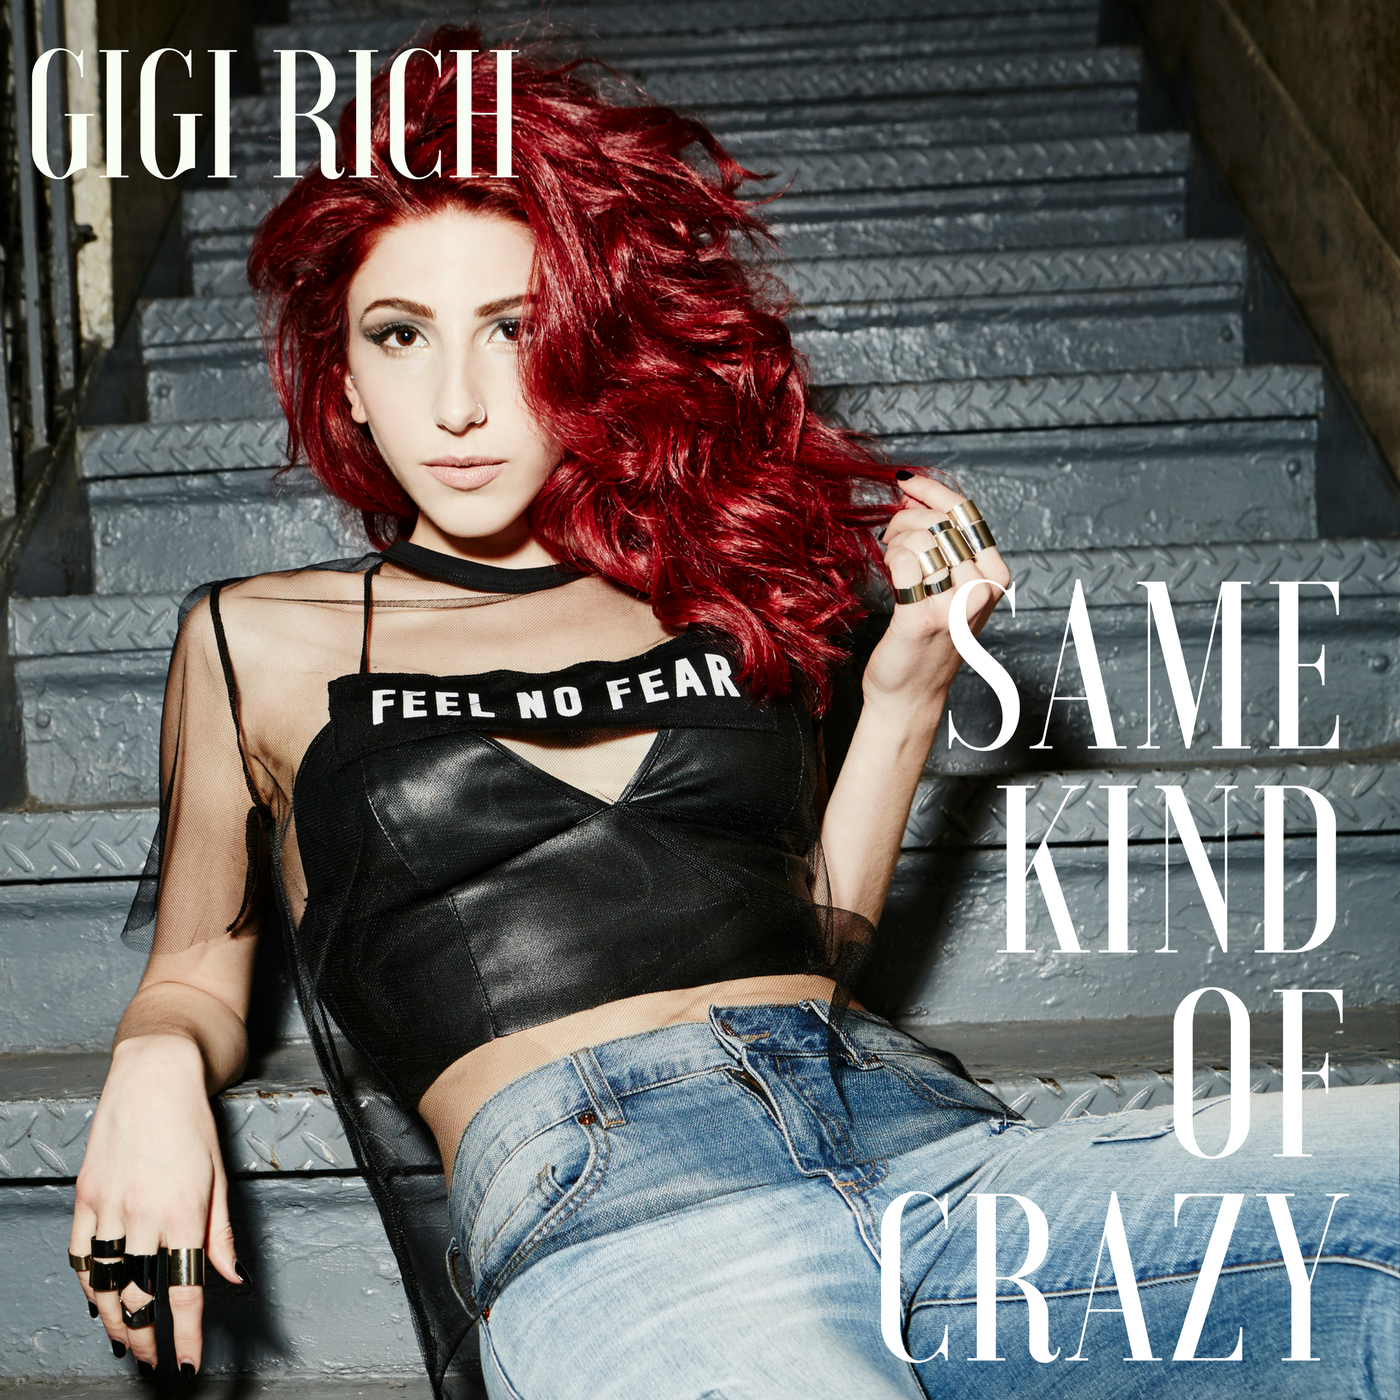 Gigi Rich Single Cover.png